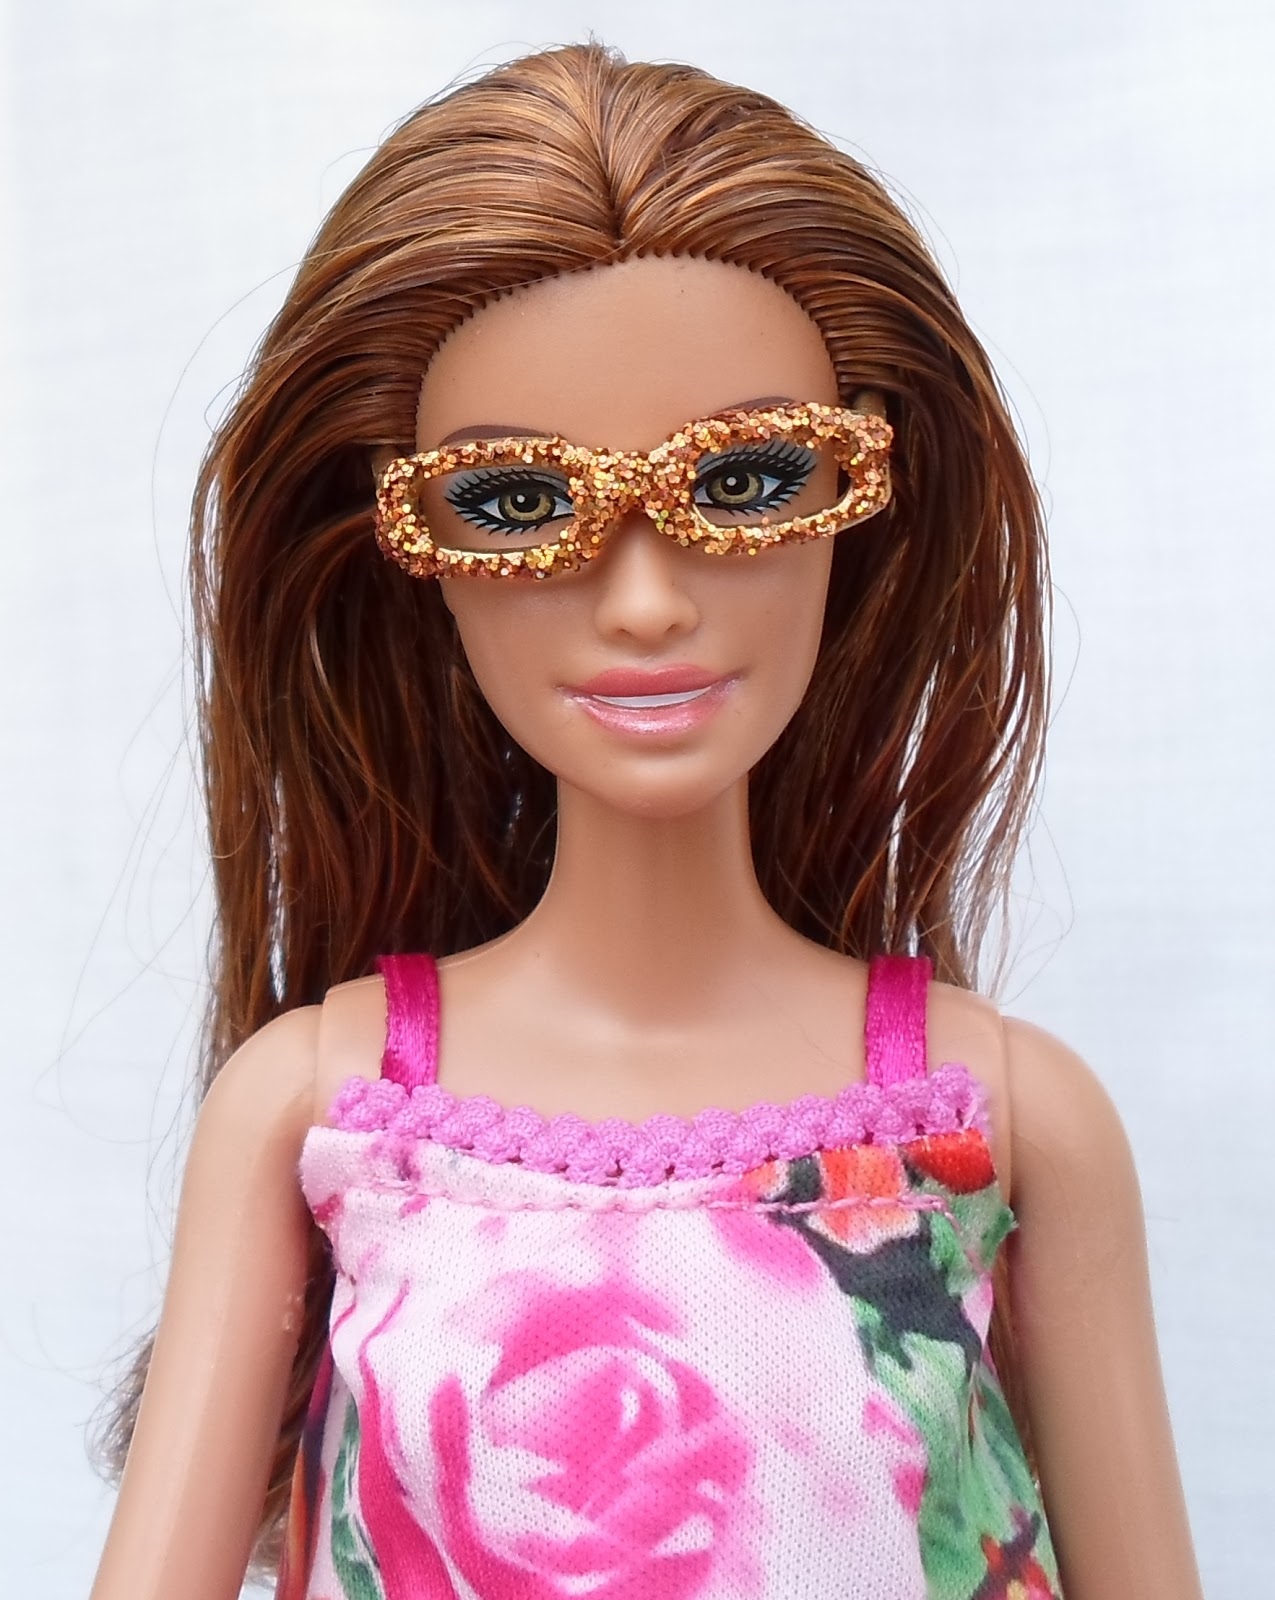 a5b3d84e3409 DIY Barbie Blog   Adding Glittery Bling to Barbie Glasses